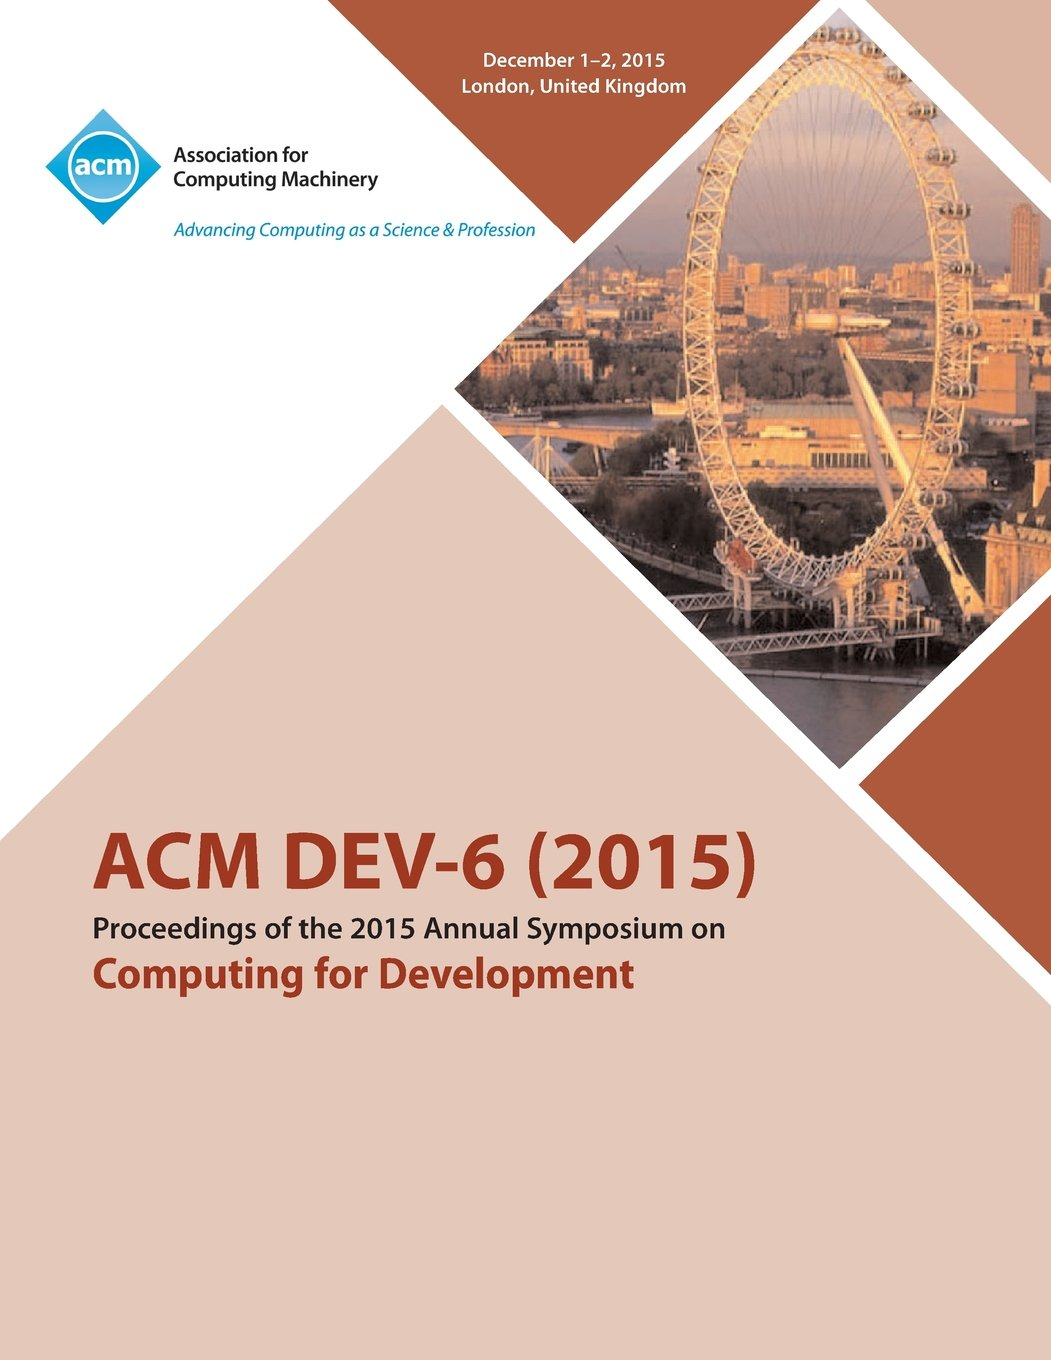 DEV-6 '15 Sixth ACM Annual Symposium on Computing for Development ebook